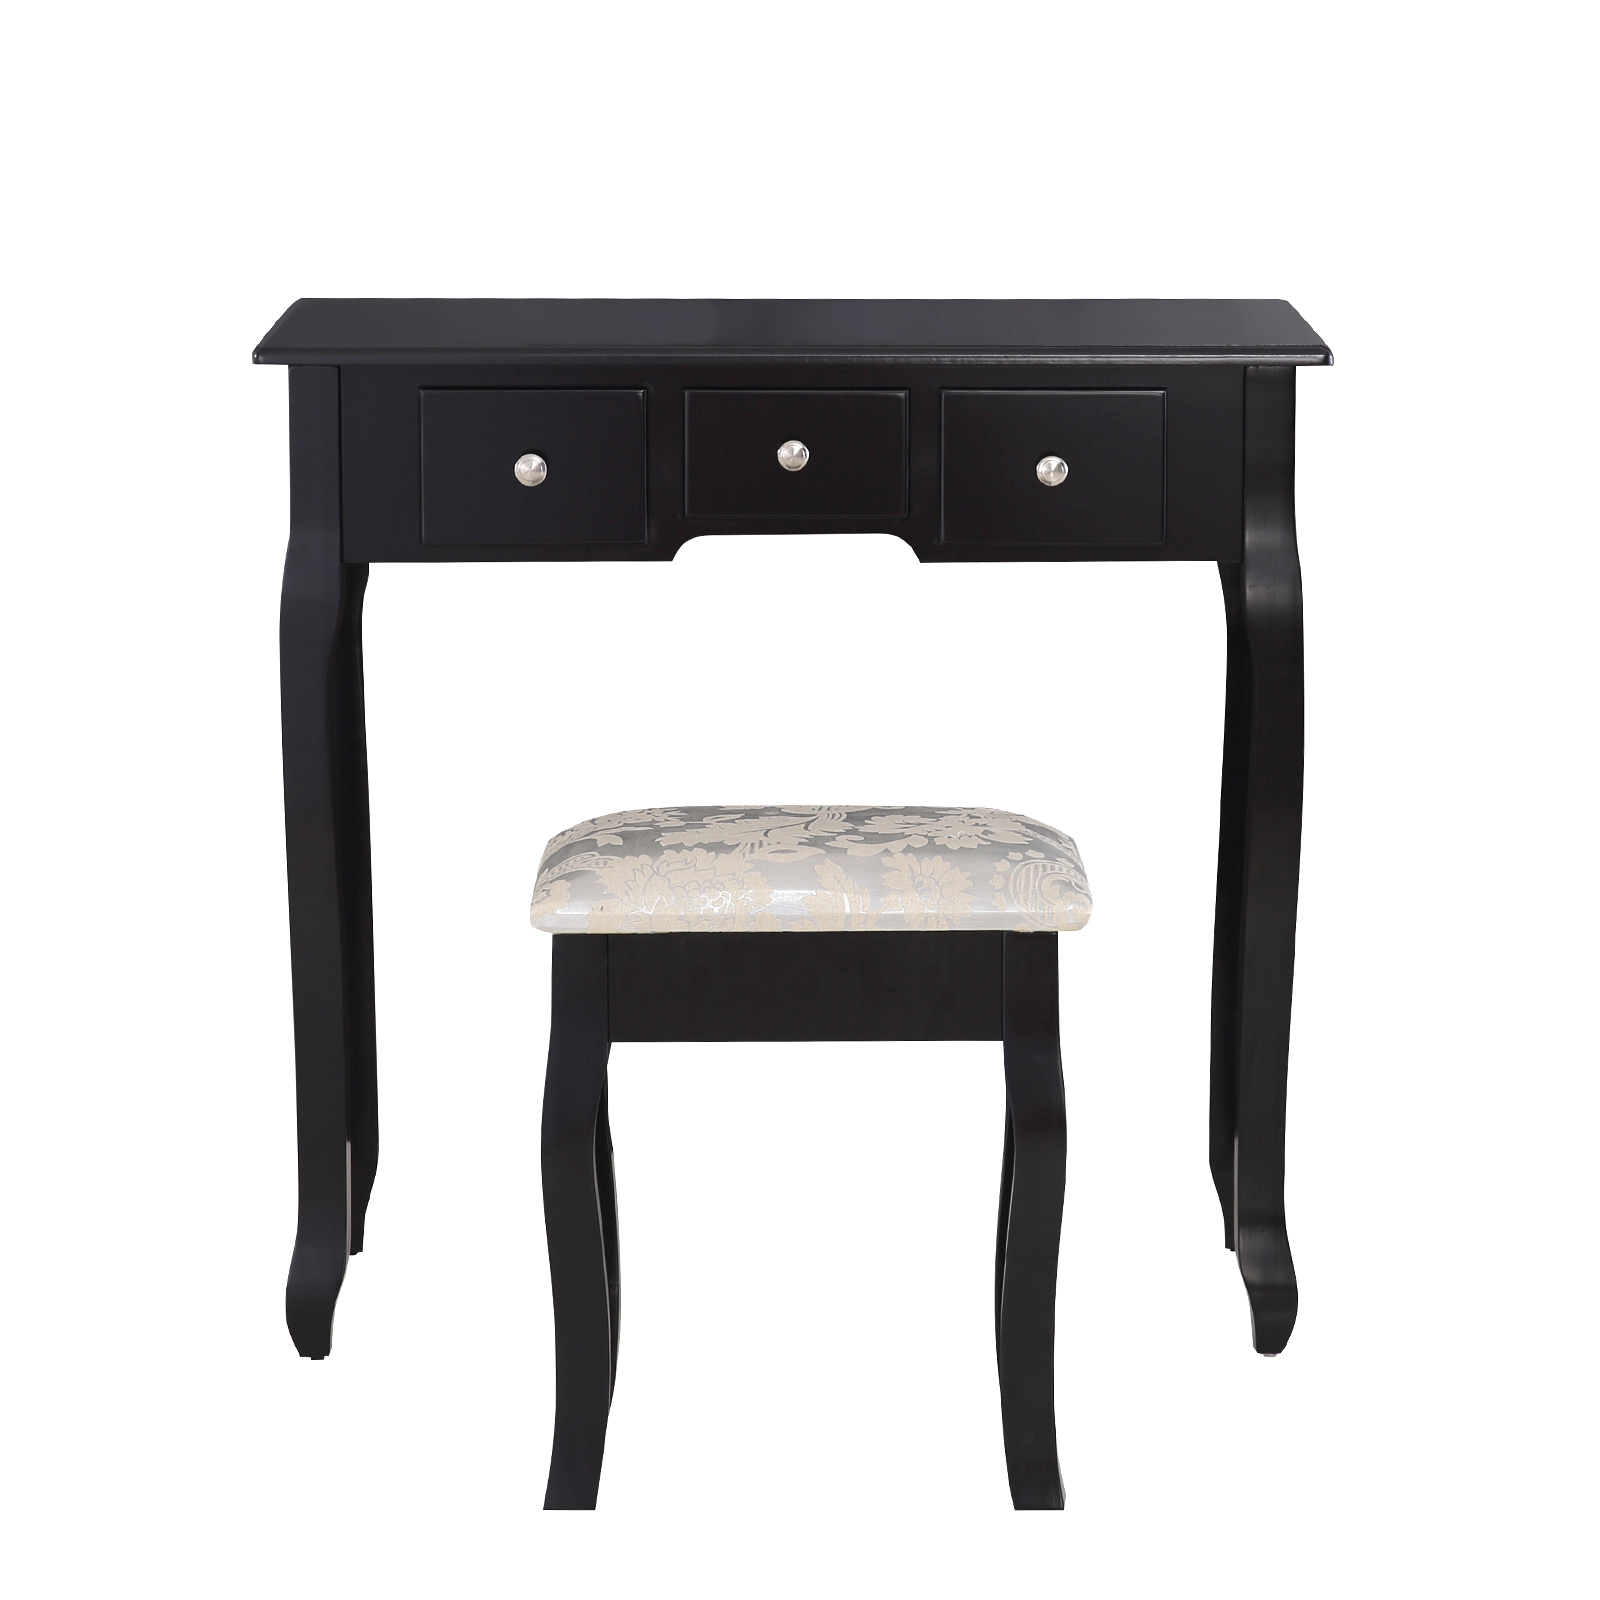 Black dressing table makeup desk with stool drawers